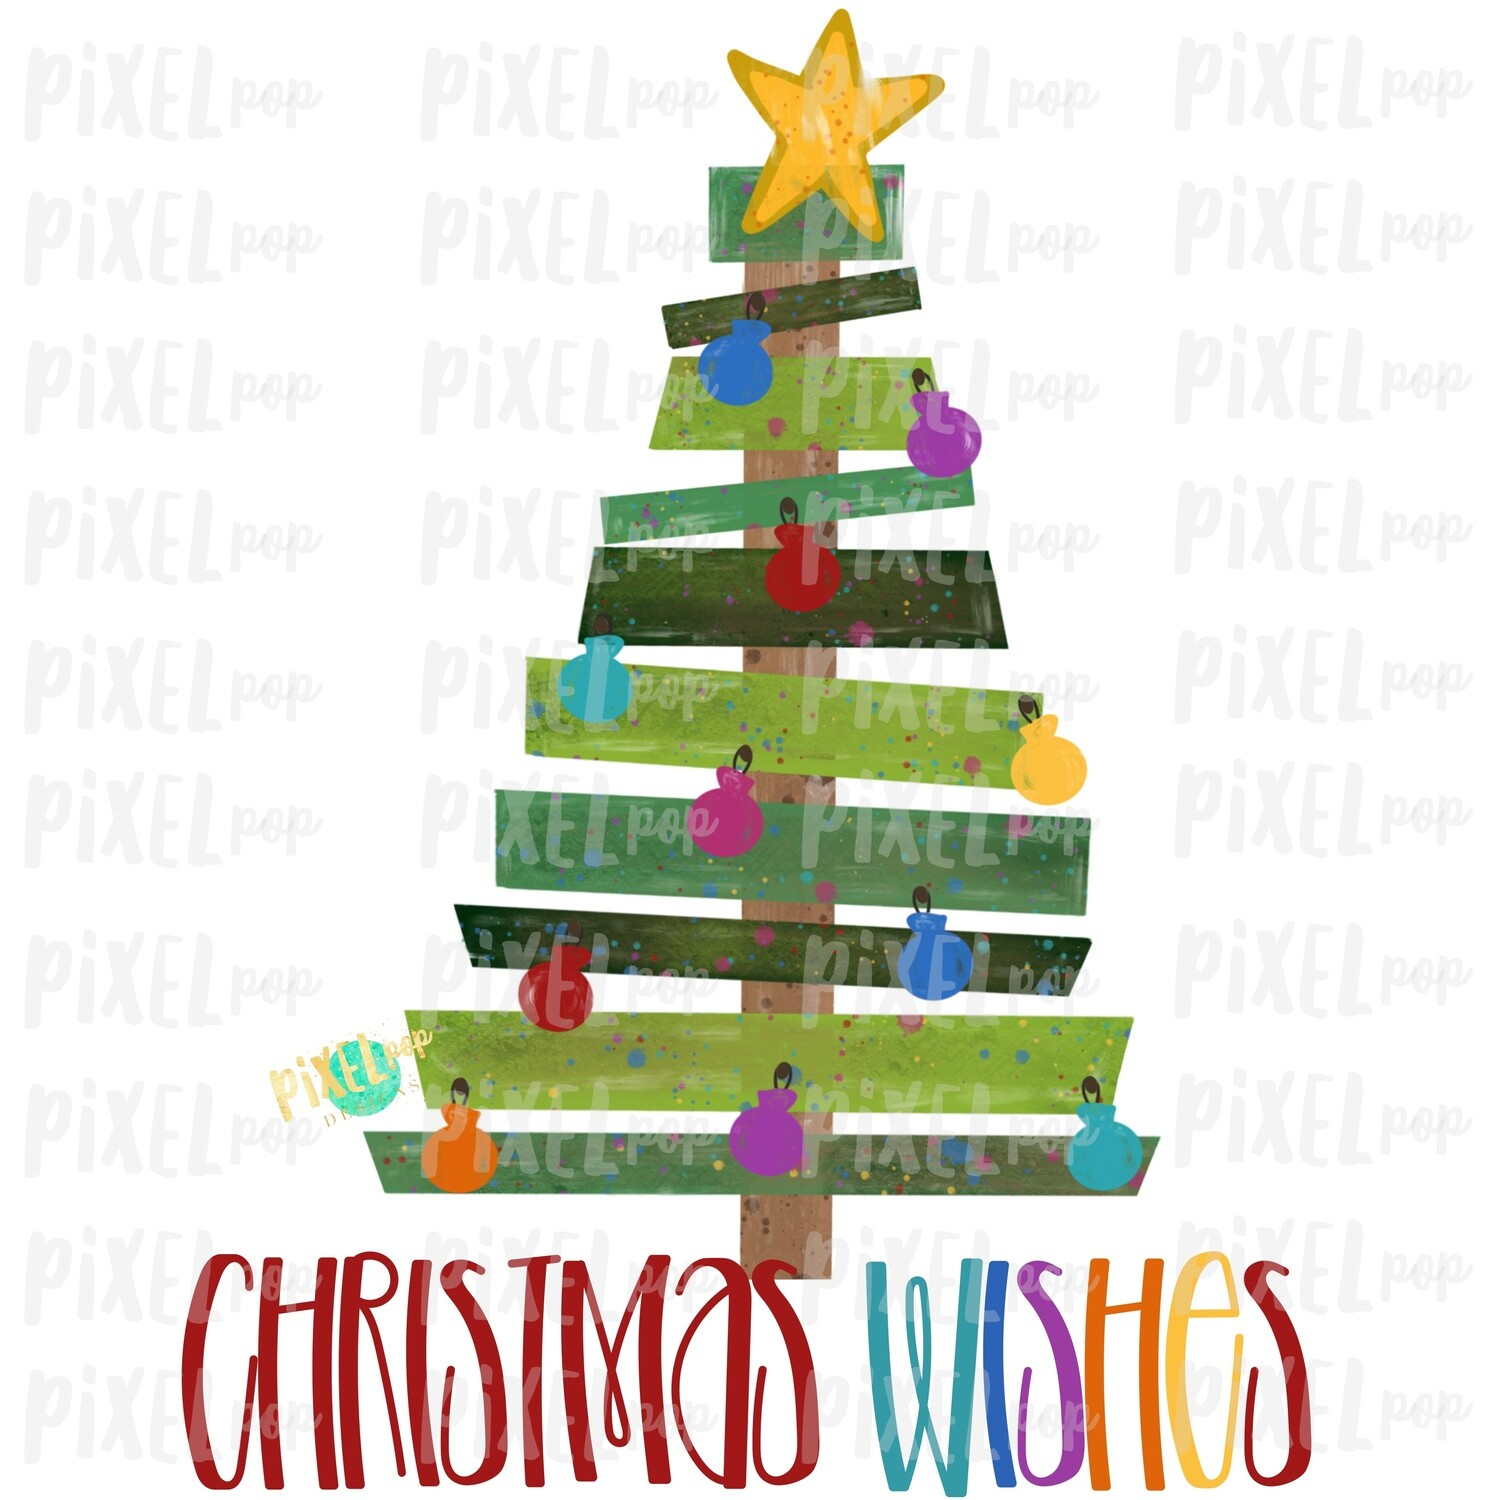 Christmas Wishes Wood Pallet Christmas Tree Sublimation PNG | Hand Painted Design | Sublimation PNG | Digital Download | Printable Artwork